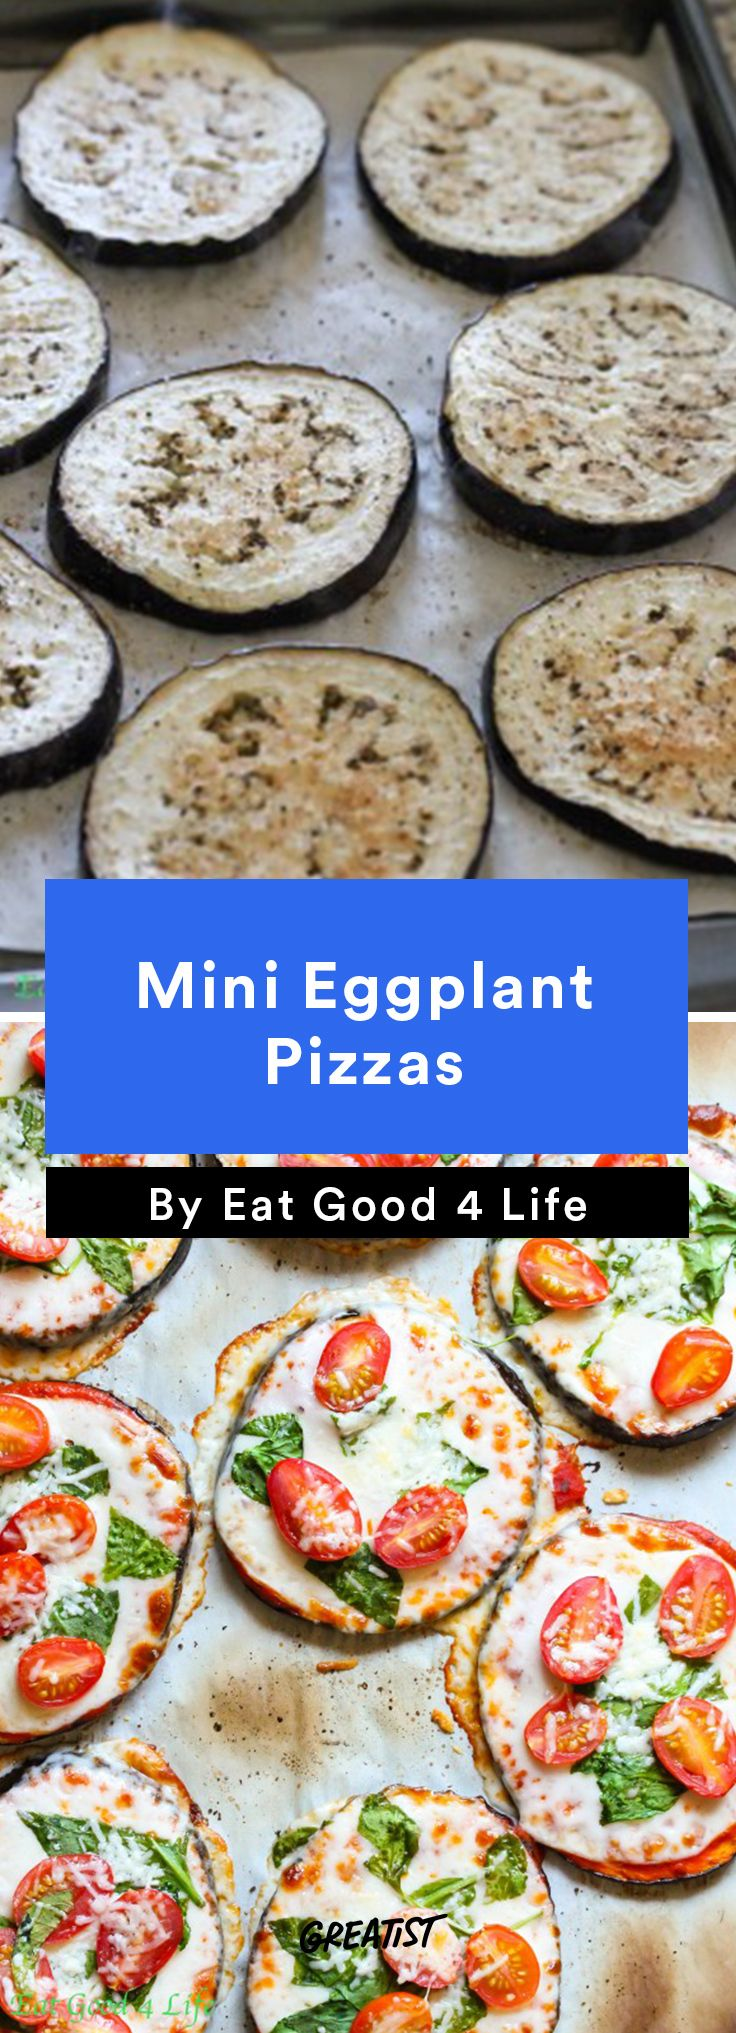 100 mini pizza recipes on pinterest tortilla pizza pepperoni recipes and ready pizza. Black Bedroom Furniture Sets. Home Design Ideas